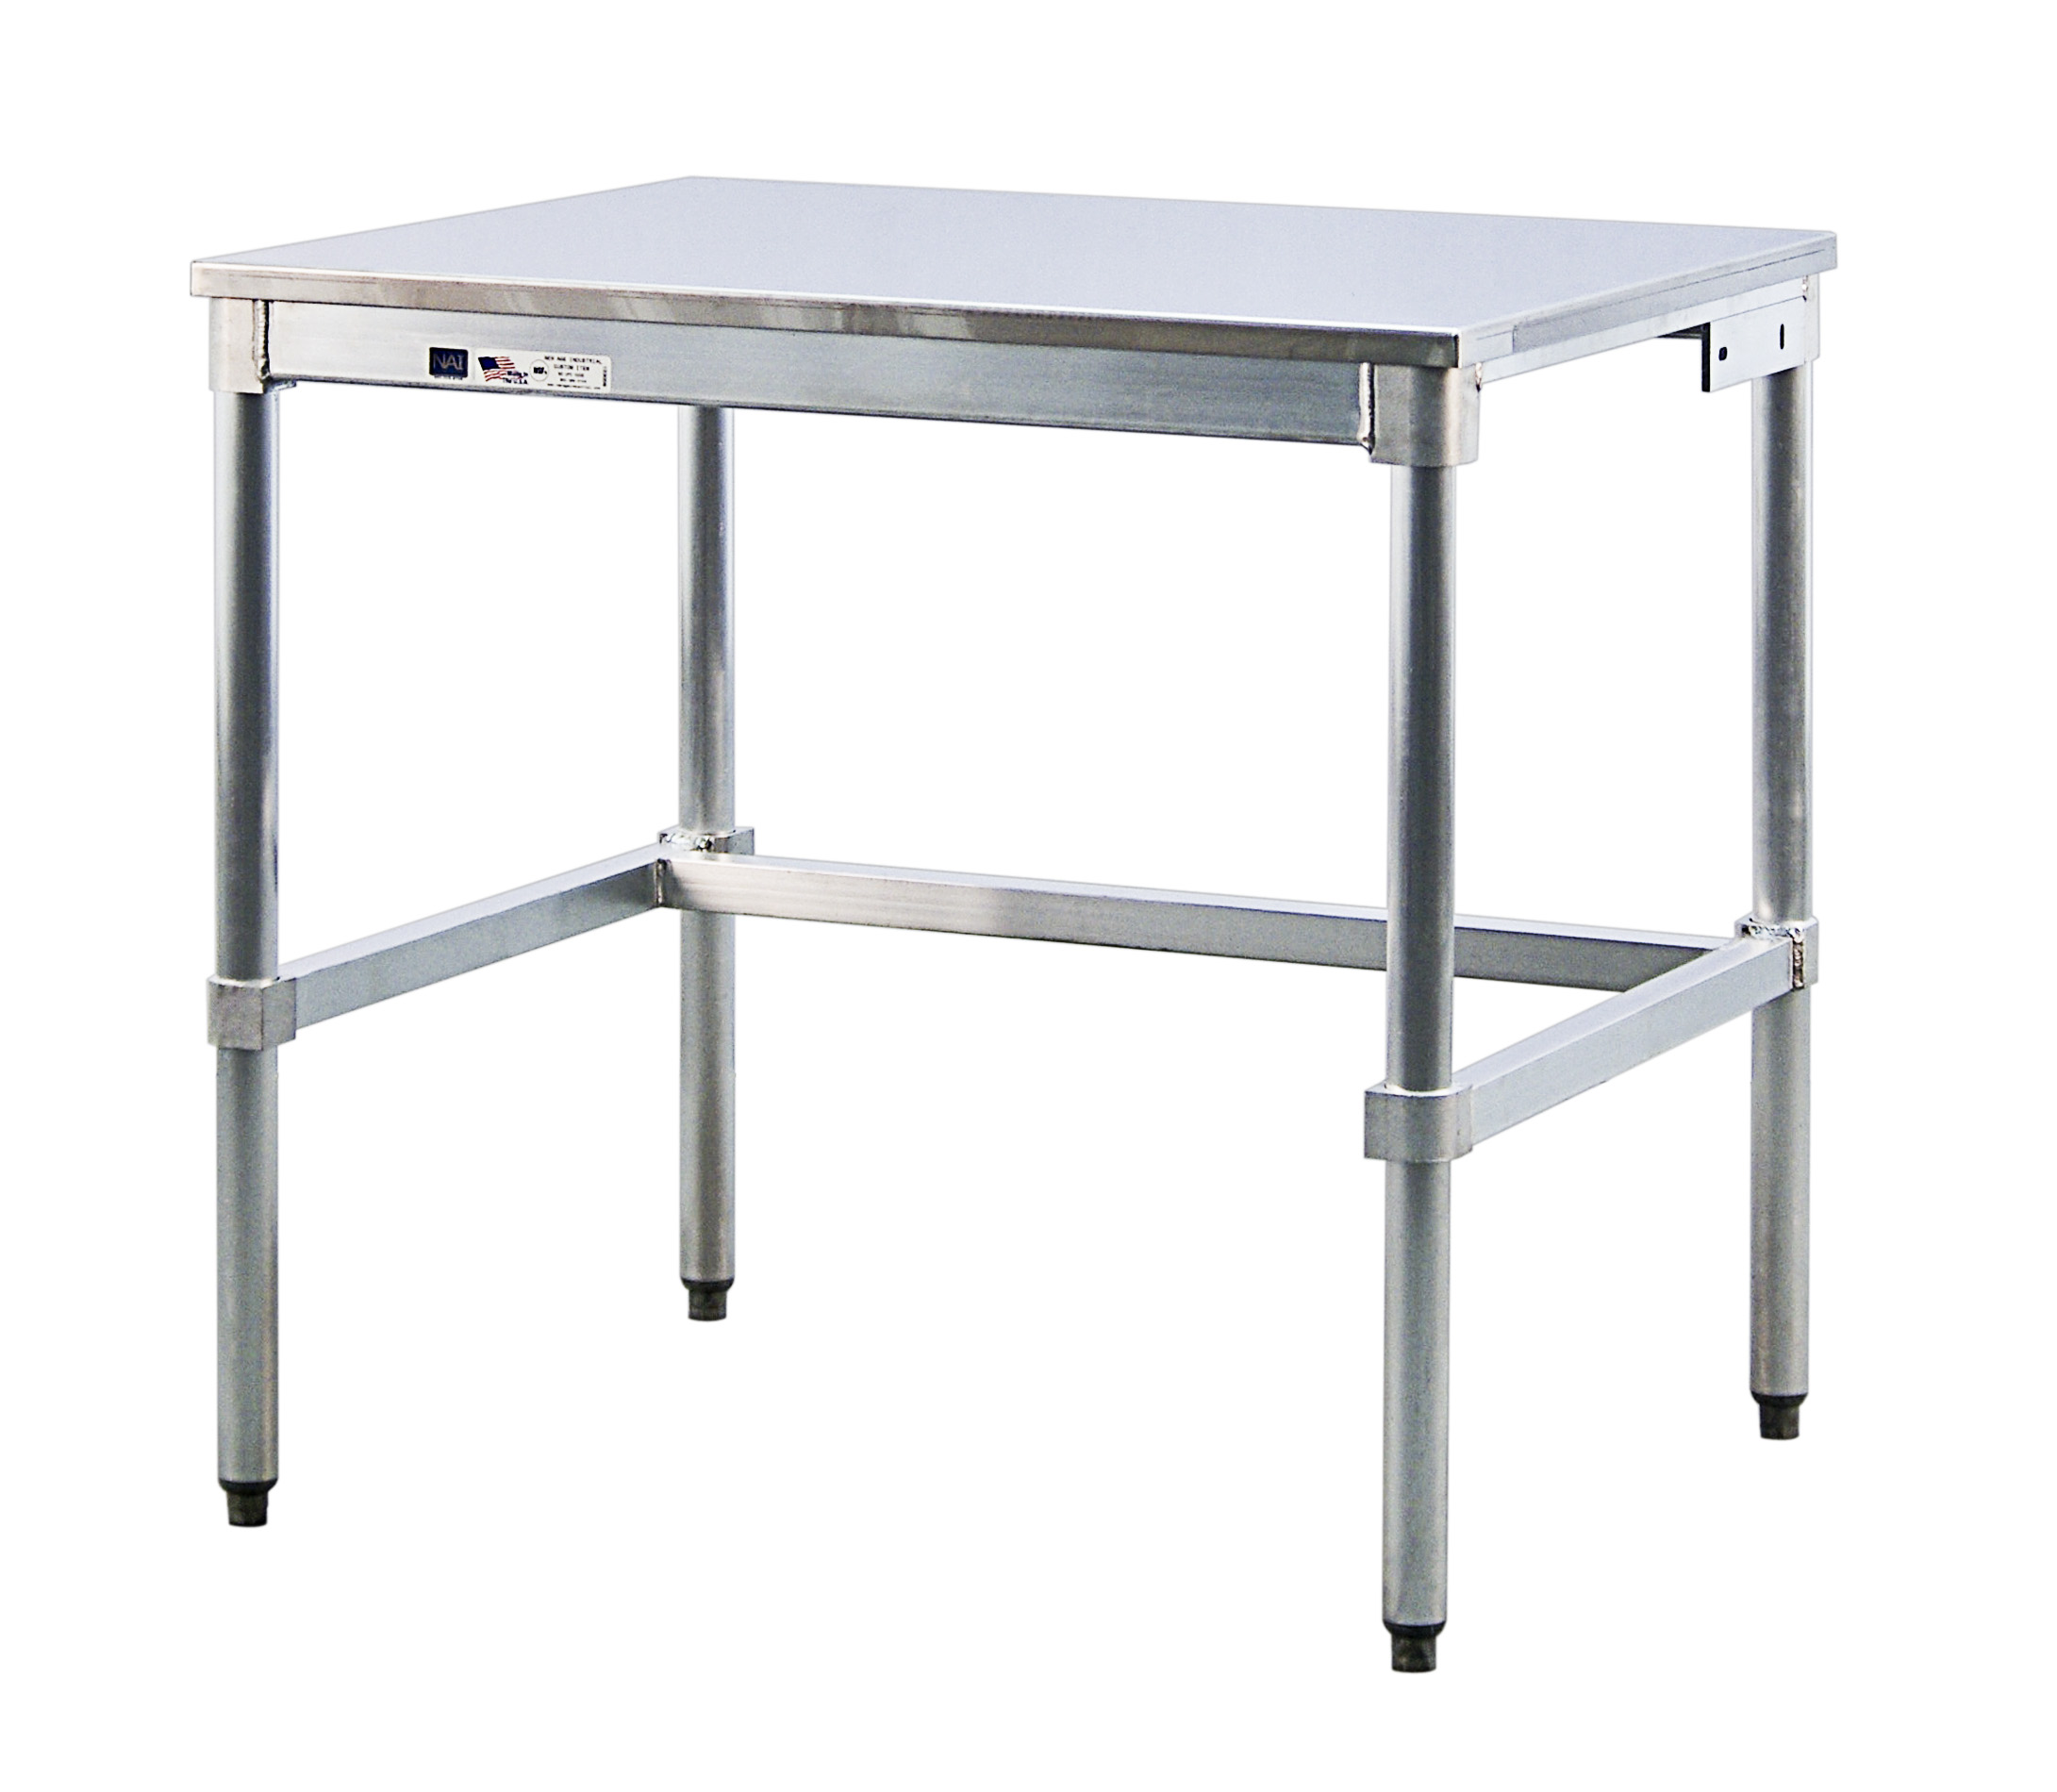 stainless steel top work tables warehouse rack and shelf. Black Bedroom Furniture Sets. Home Design Ideas